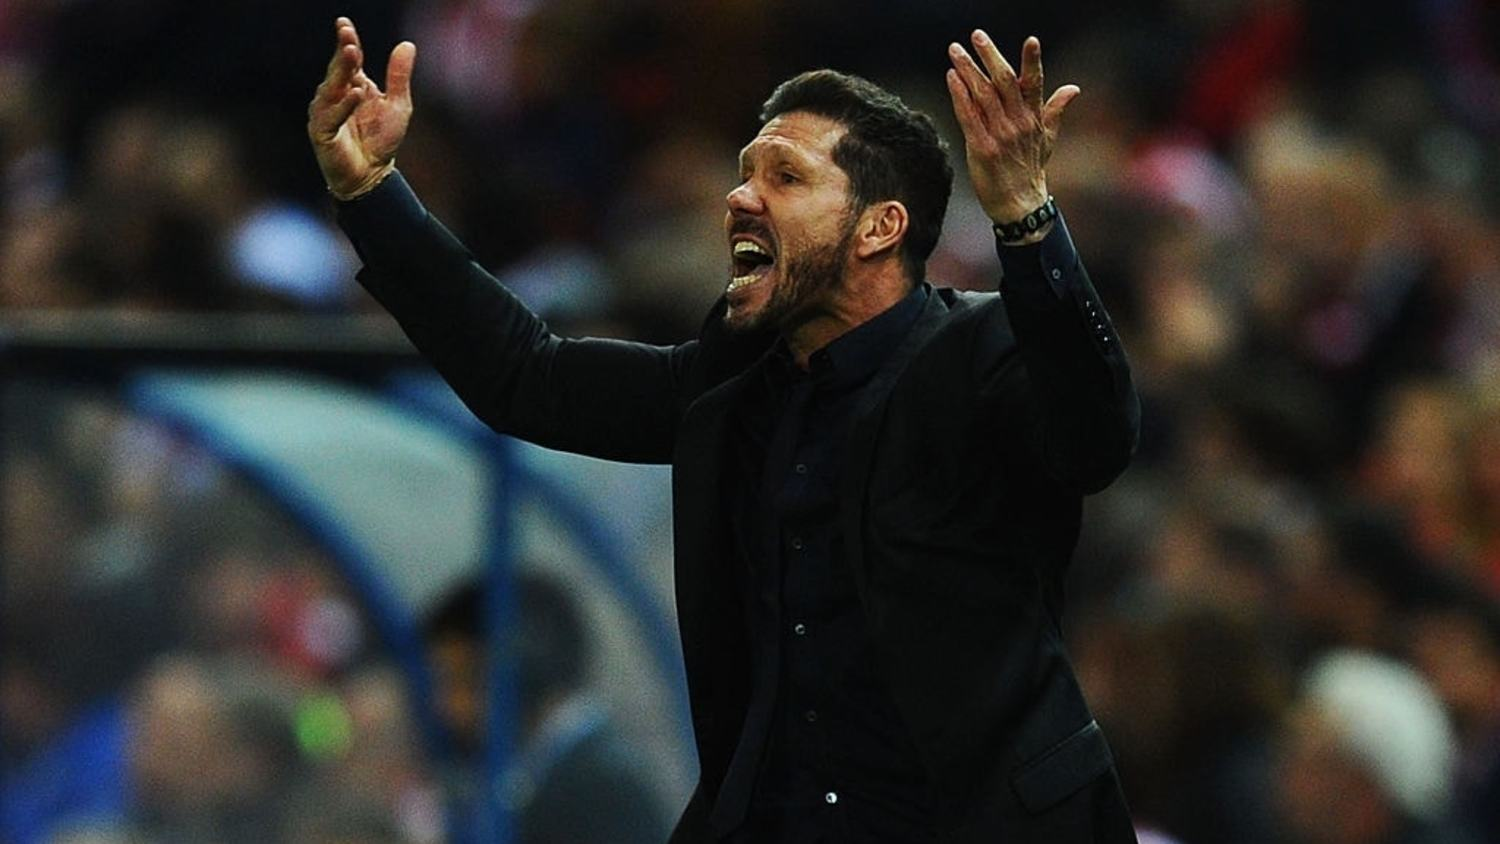 Simeone's Atletico Madrid: Aggressive, disciplined, but not defensive